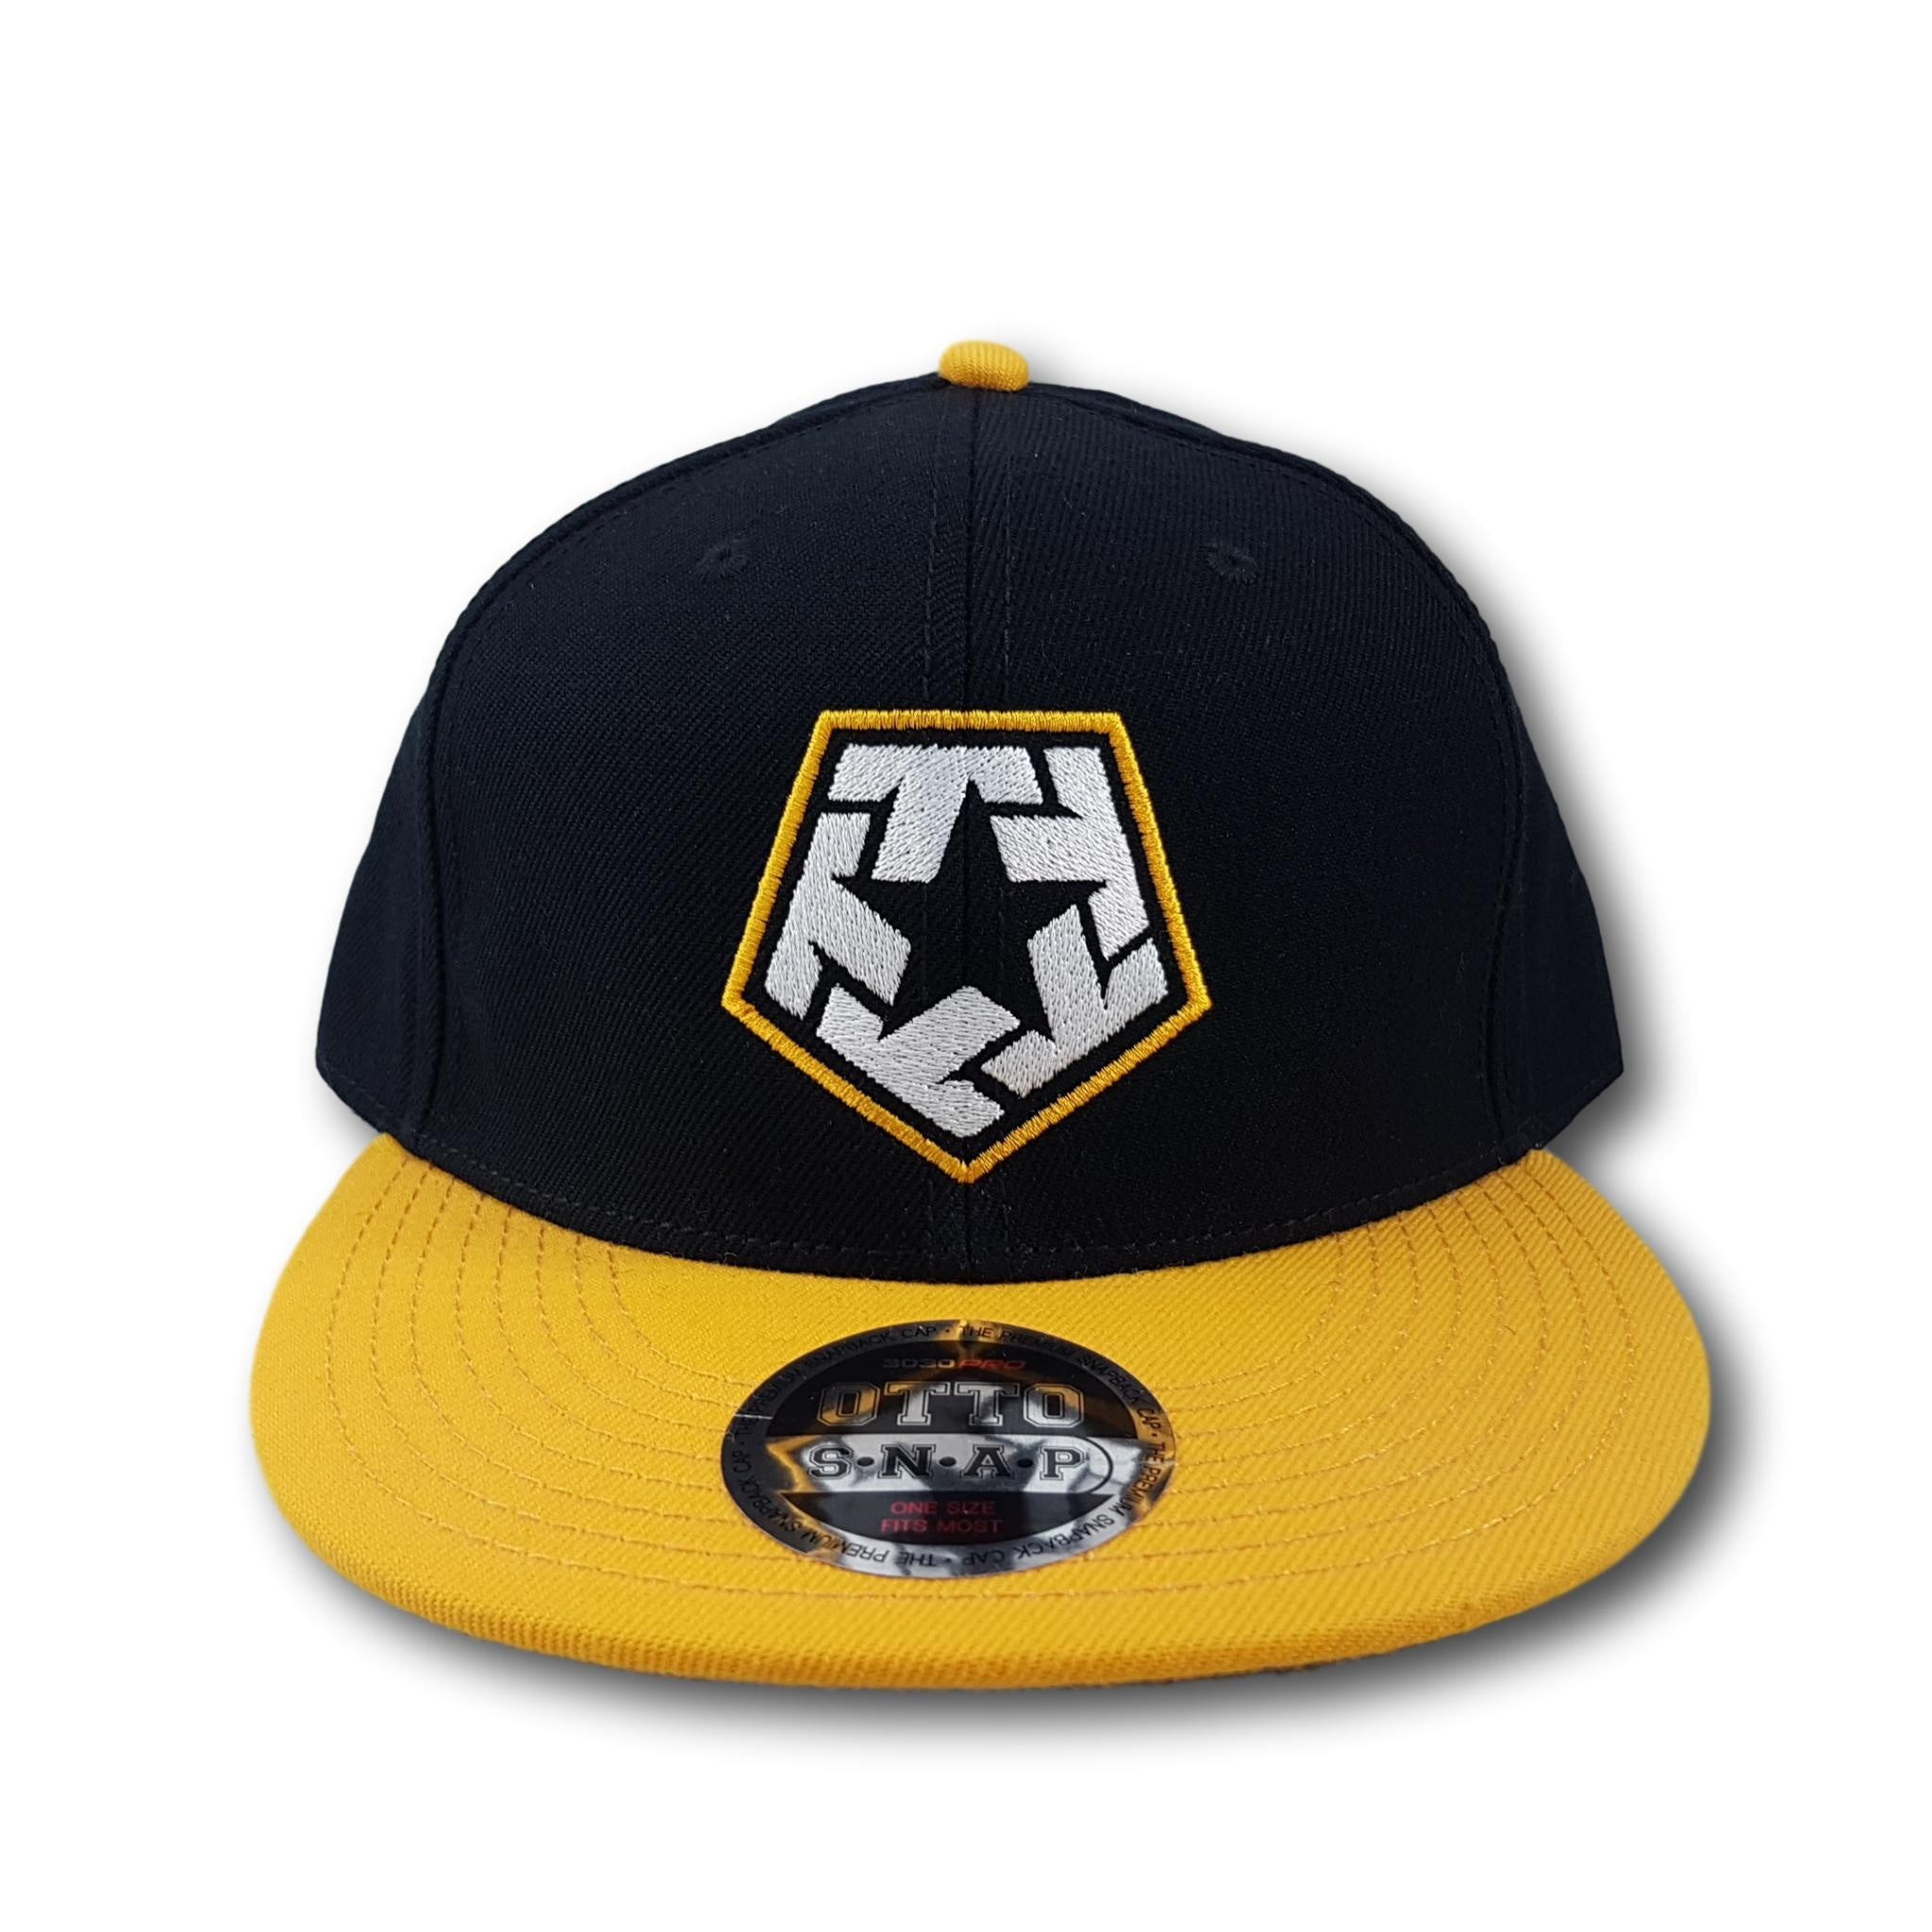 Tribal Gear T-Star Snapback Black/Yellow